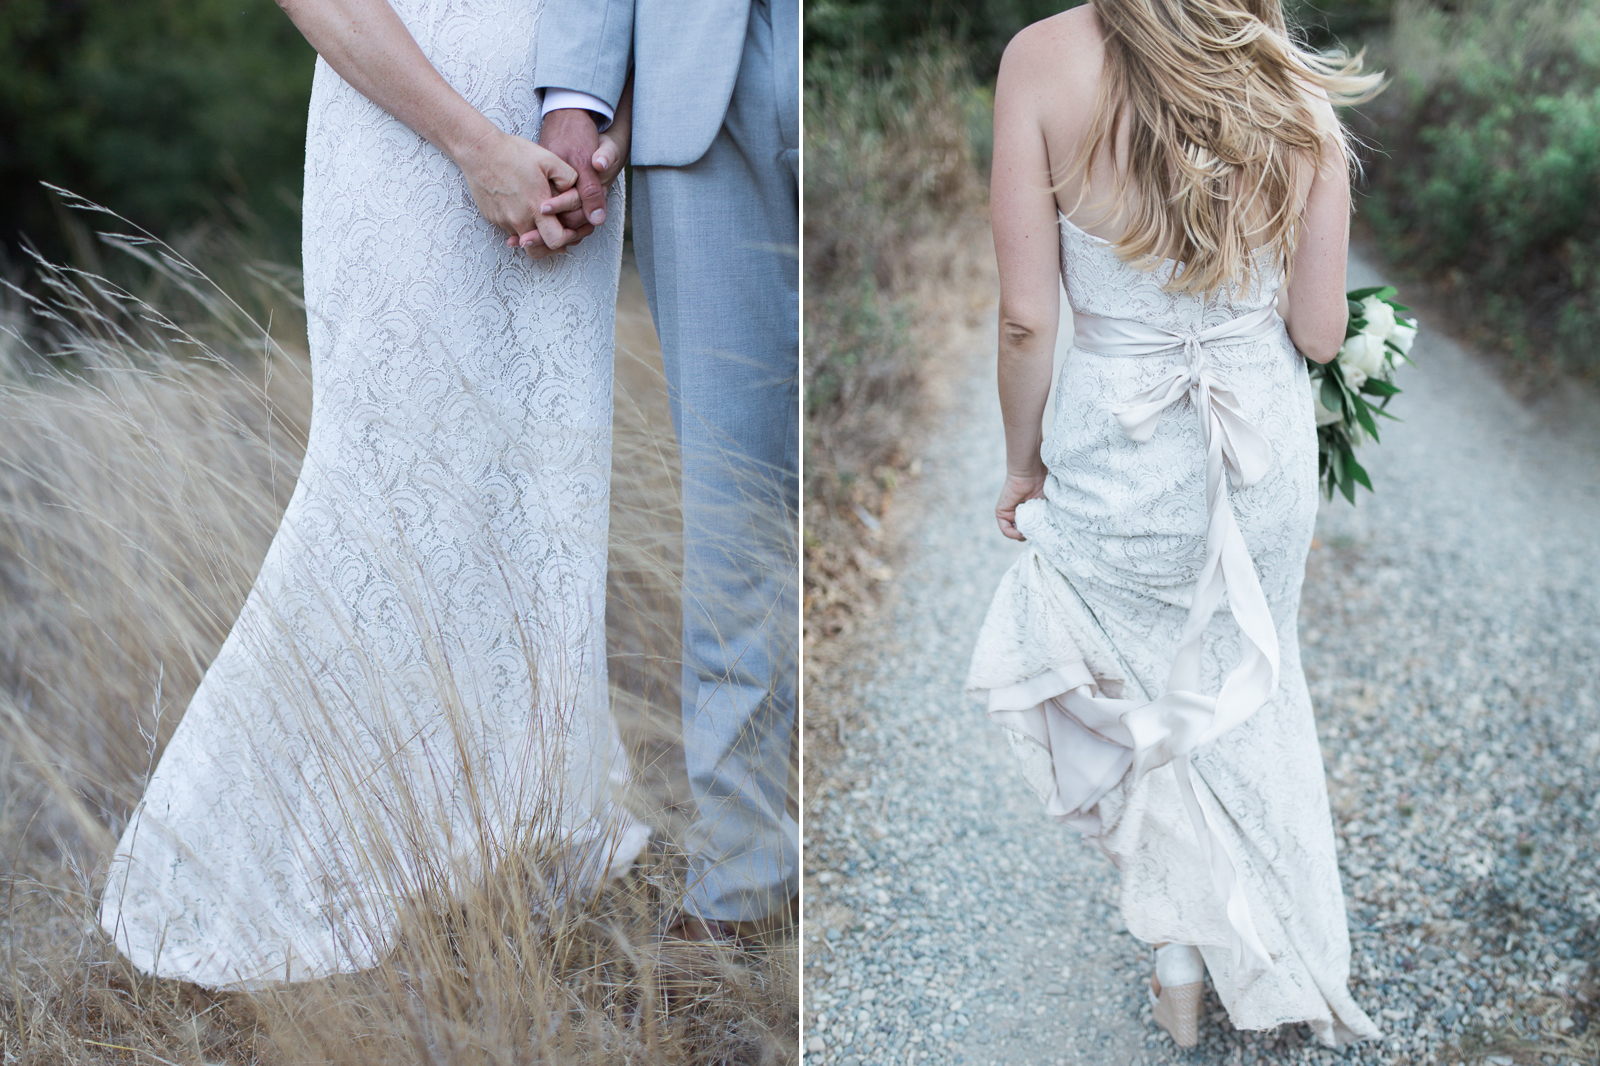 Arroyo Hondo Wedding - Kiel Rucker Photography